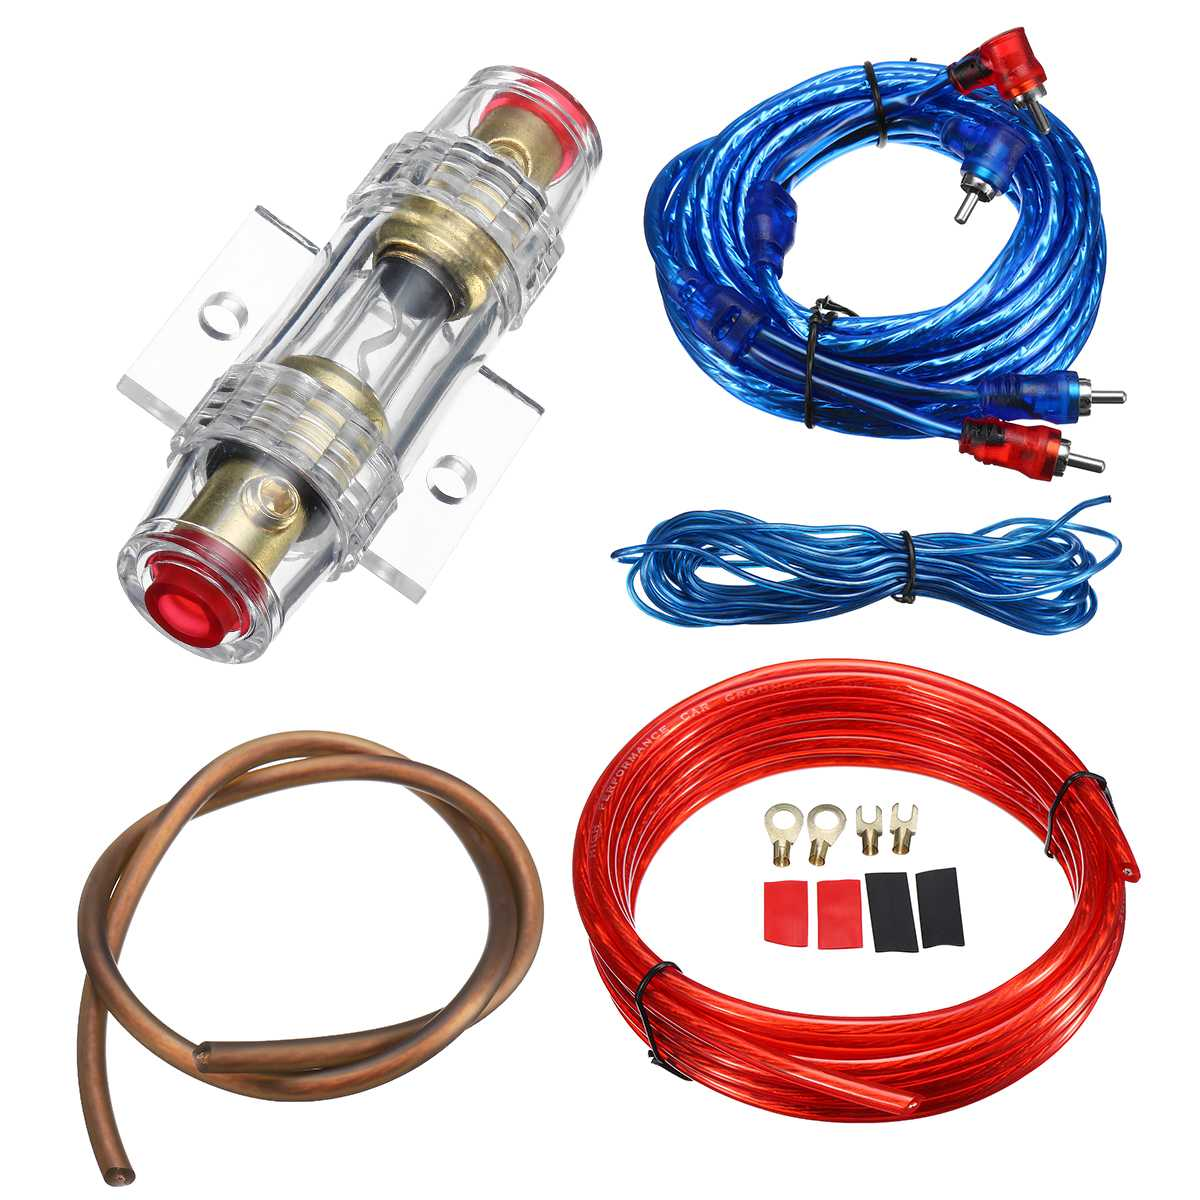 medium resolution of 1500w car audio speakers wiring kits cable amplifier subwoofer speaker installation wires kit 8ga power cable 60 amp fuse holder in speaker line from